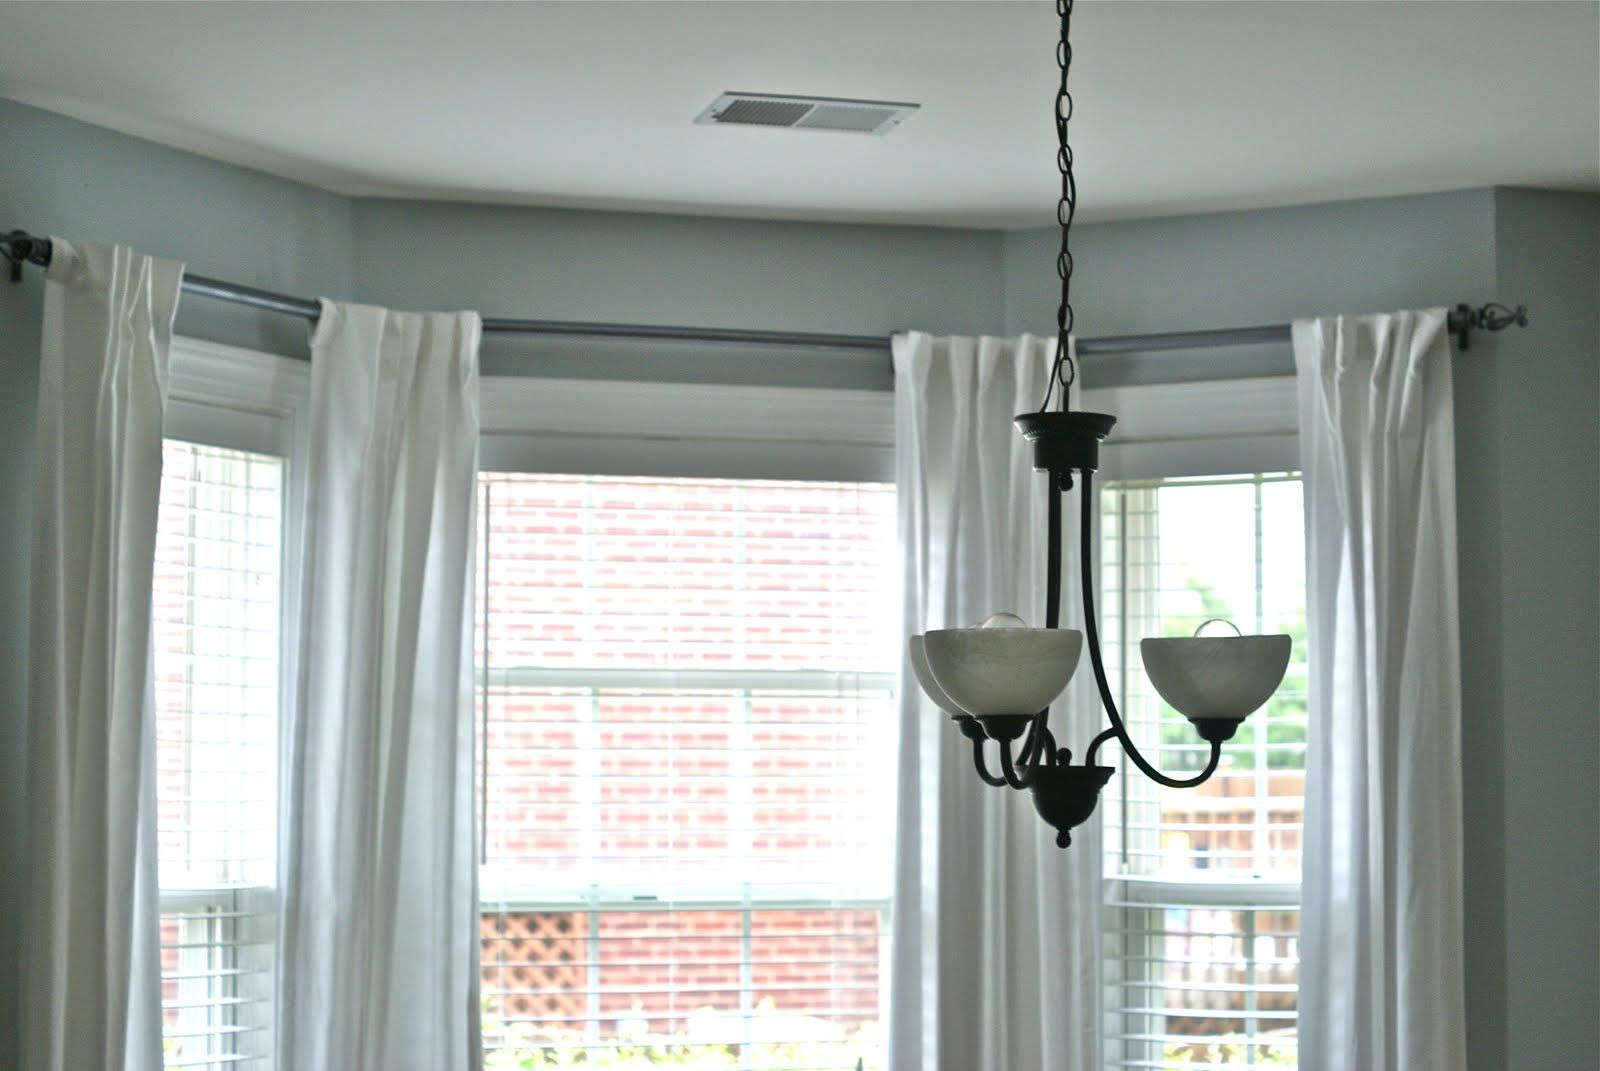 Bed bath and beyond window shades  country kitchen curtains  house  pinterest  bay window curtains